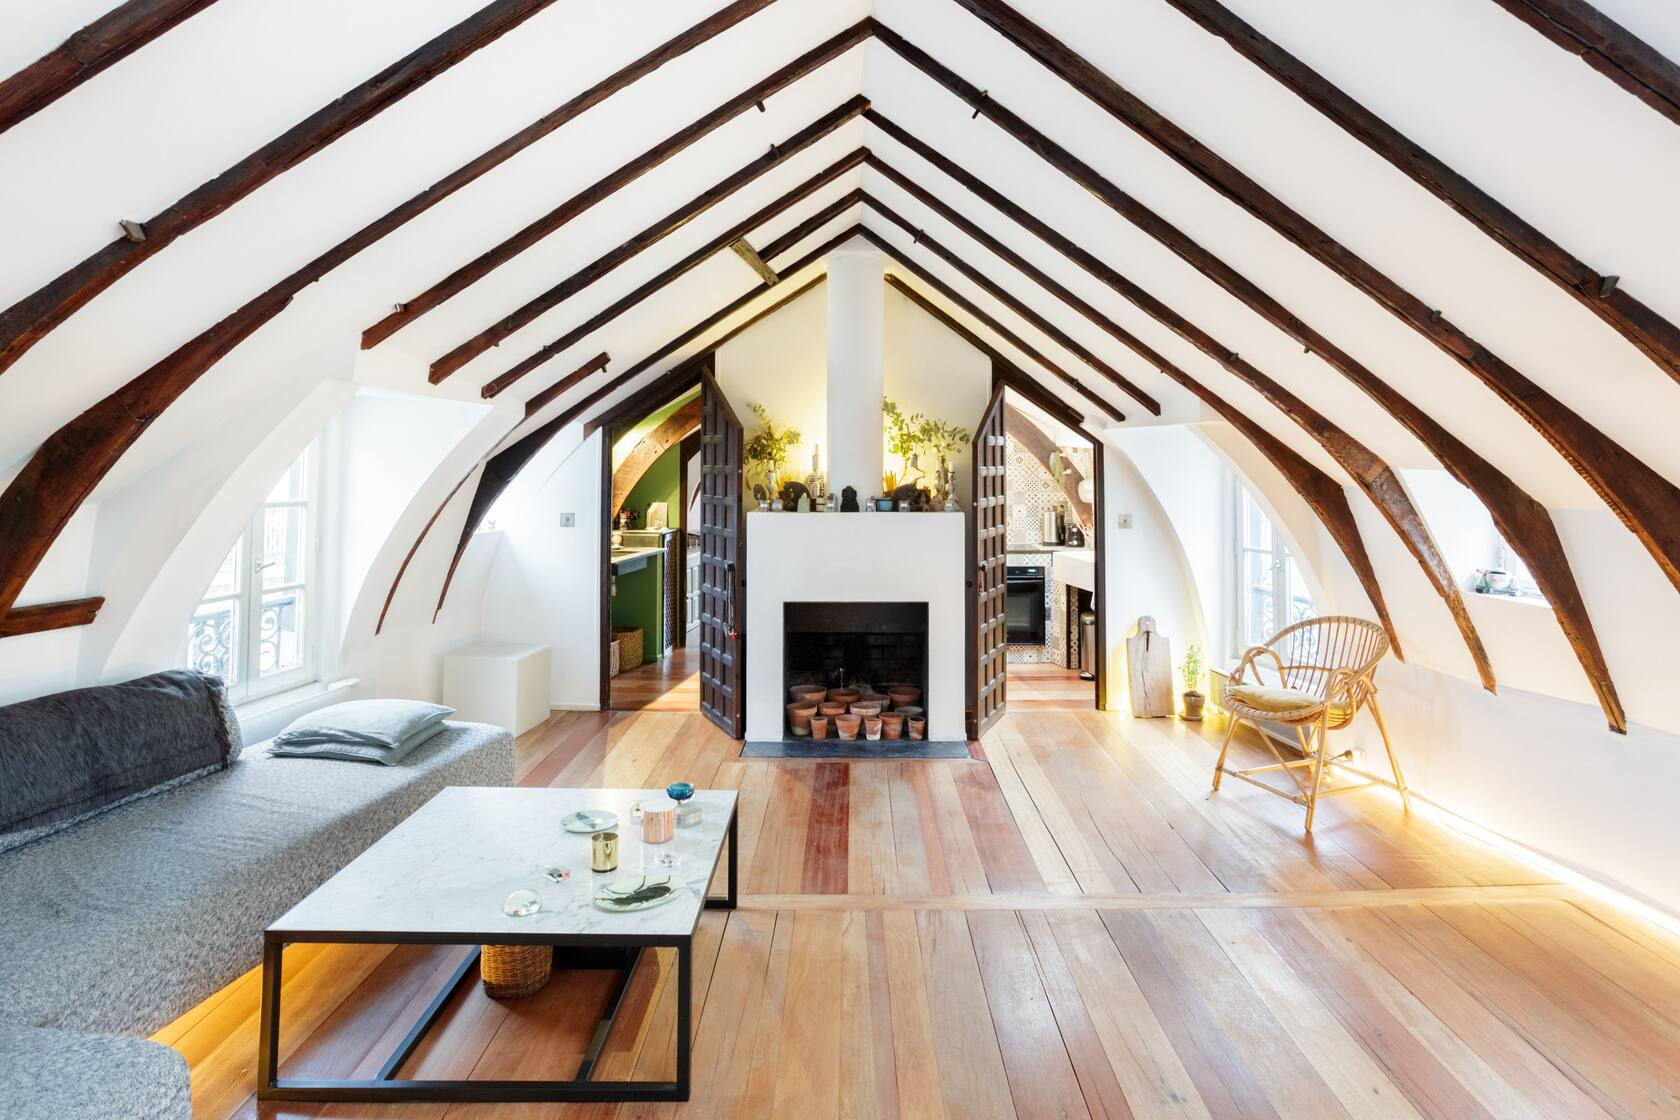 Photo of an Airbnb in Paris that is a historic loft featuring the living room with cathedral ceilings.